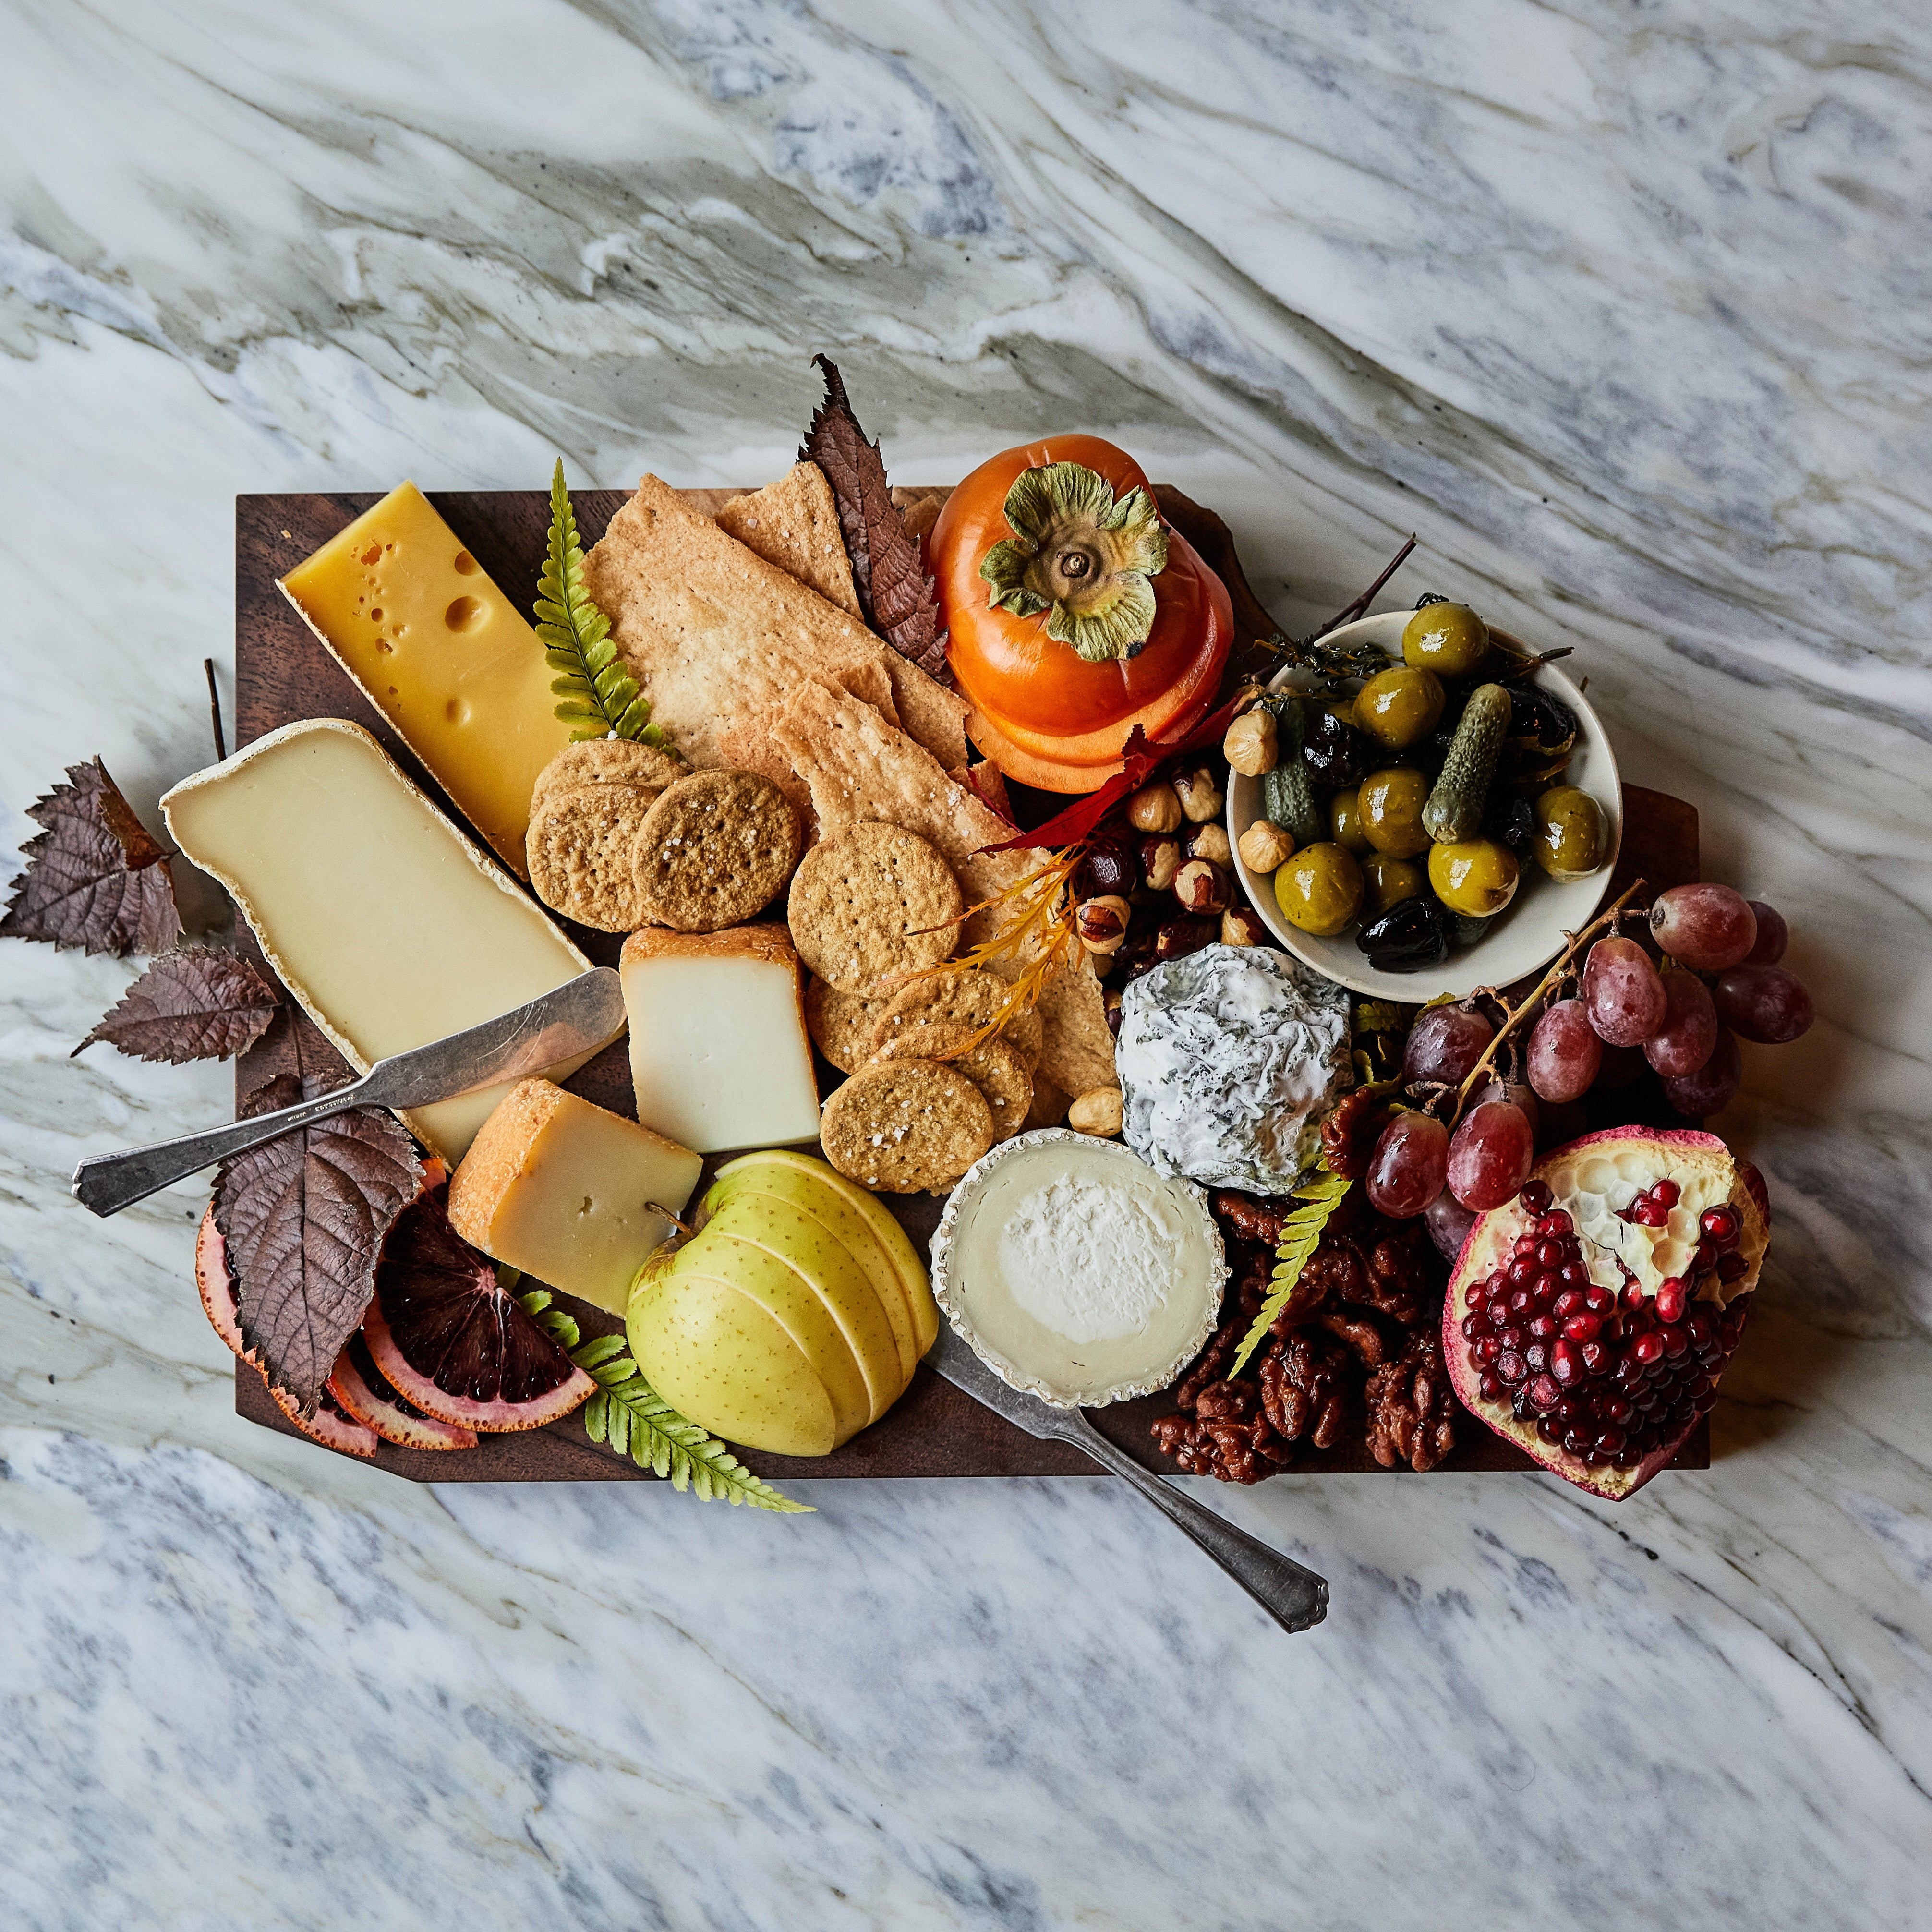 Cheese Platter with Crackers, fruits and nuts